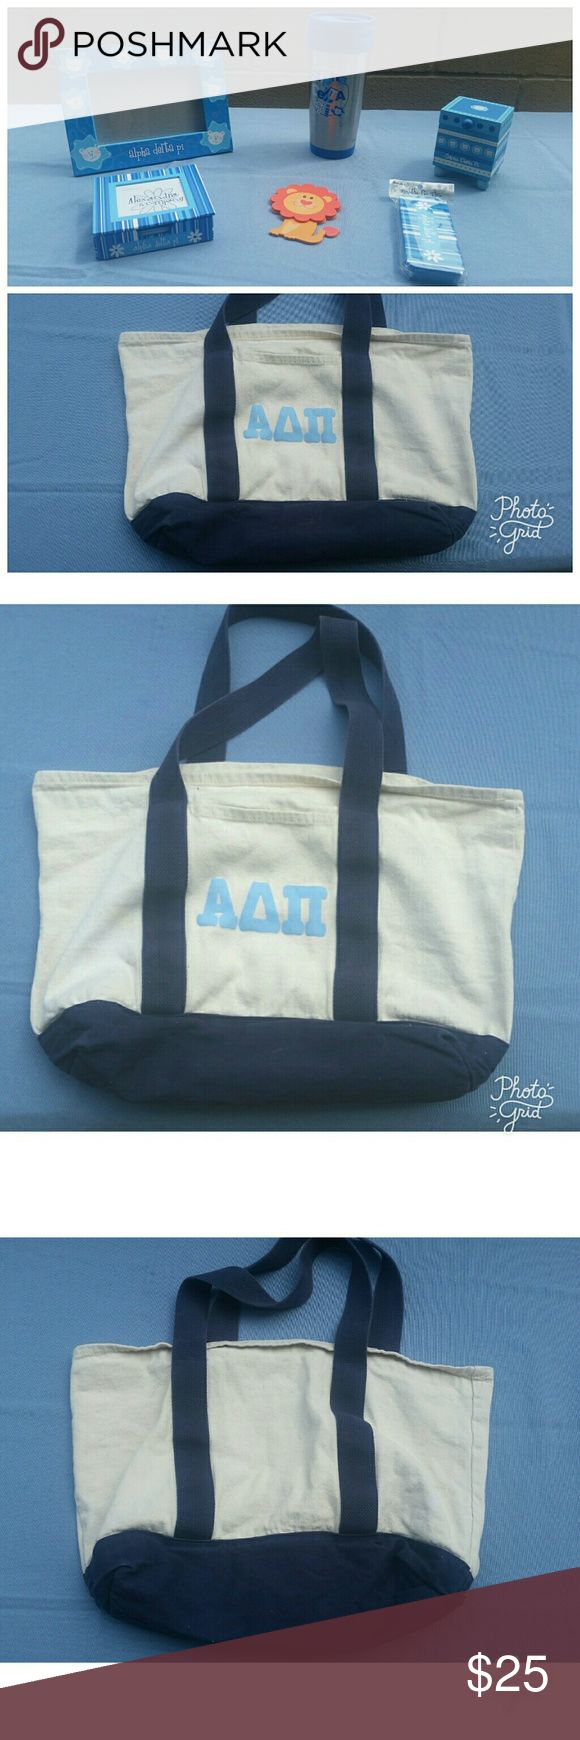 ADPi Bundle ADPi 6 pc bundle.  Perfect gift for yourself, a new little, or any ADPI in your life! All items either new or gently used.   Canvas Bag- has 2 pockets. Gently used, good condition.   On the go tin- new in plastic  Pin box- gently used, like new condition.  Frame- gently used, excellent condition.   Coffee cup- gently used, small blemish can be seen in picture. Only sign of use.  Post-it note holder/picture frame- NWOT.  Selling as a bundle. Reasonable offers accepted. ADPI Bags…